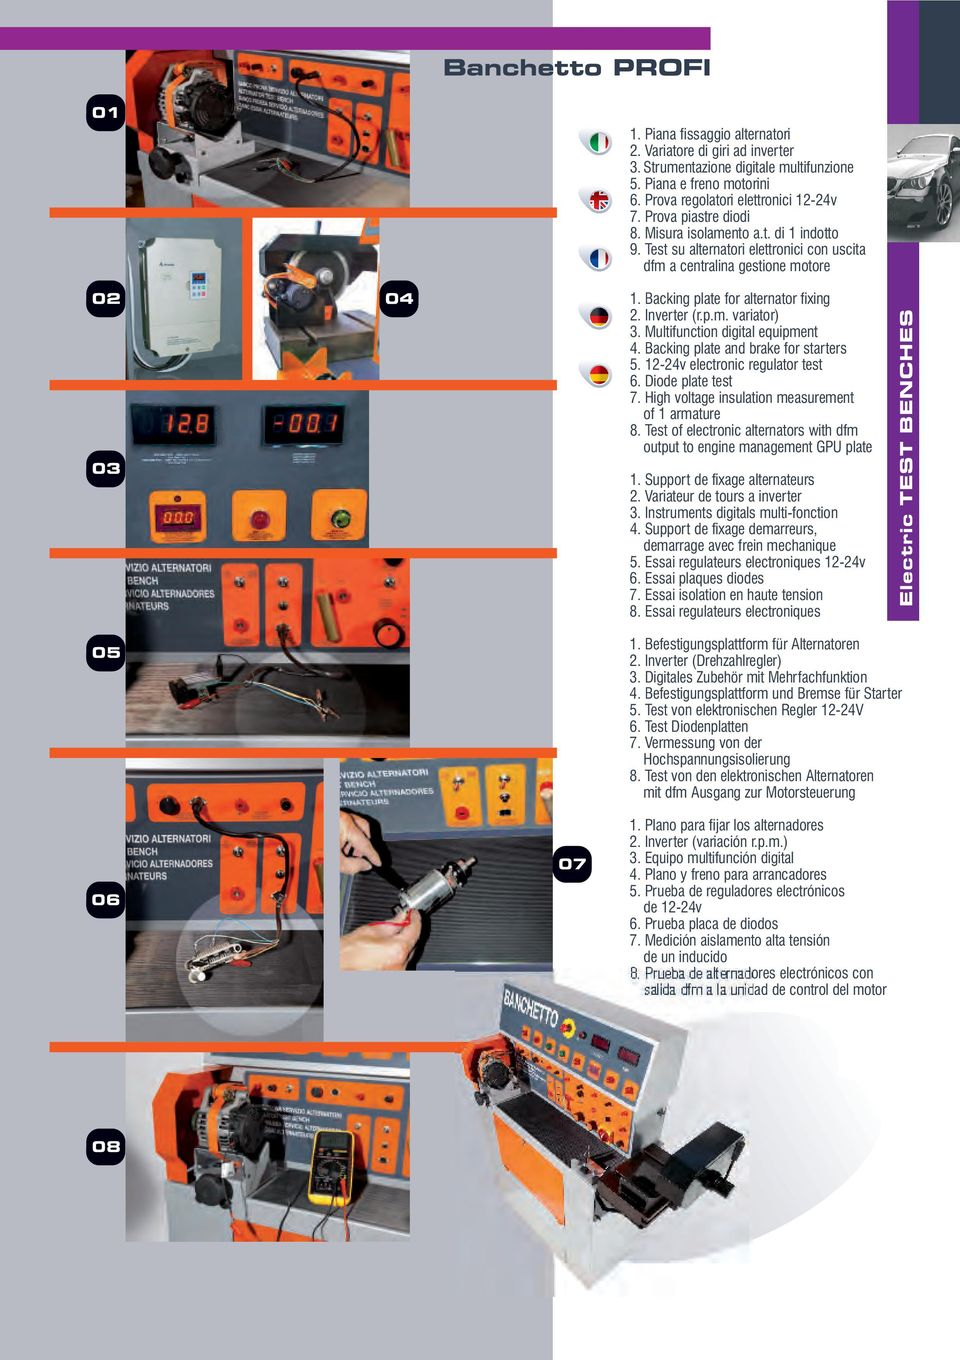 Inverter (r.p.m. variator) 3. Multifunction digital equipment 4. Backing plate and brake for starters 5. 12-24v electronic regulator test 6. Diode plate test 7.